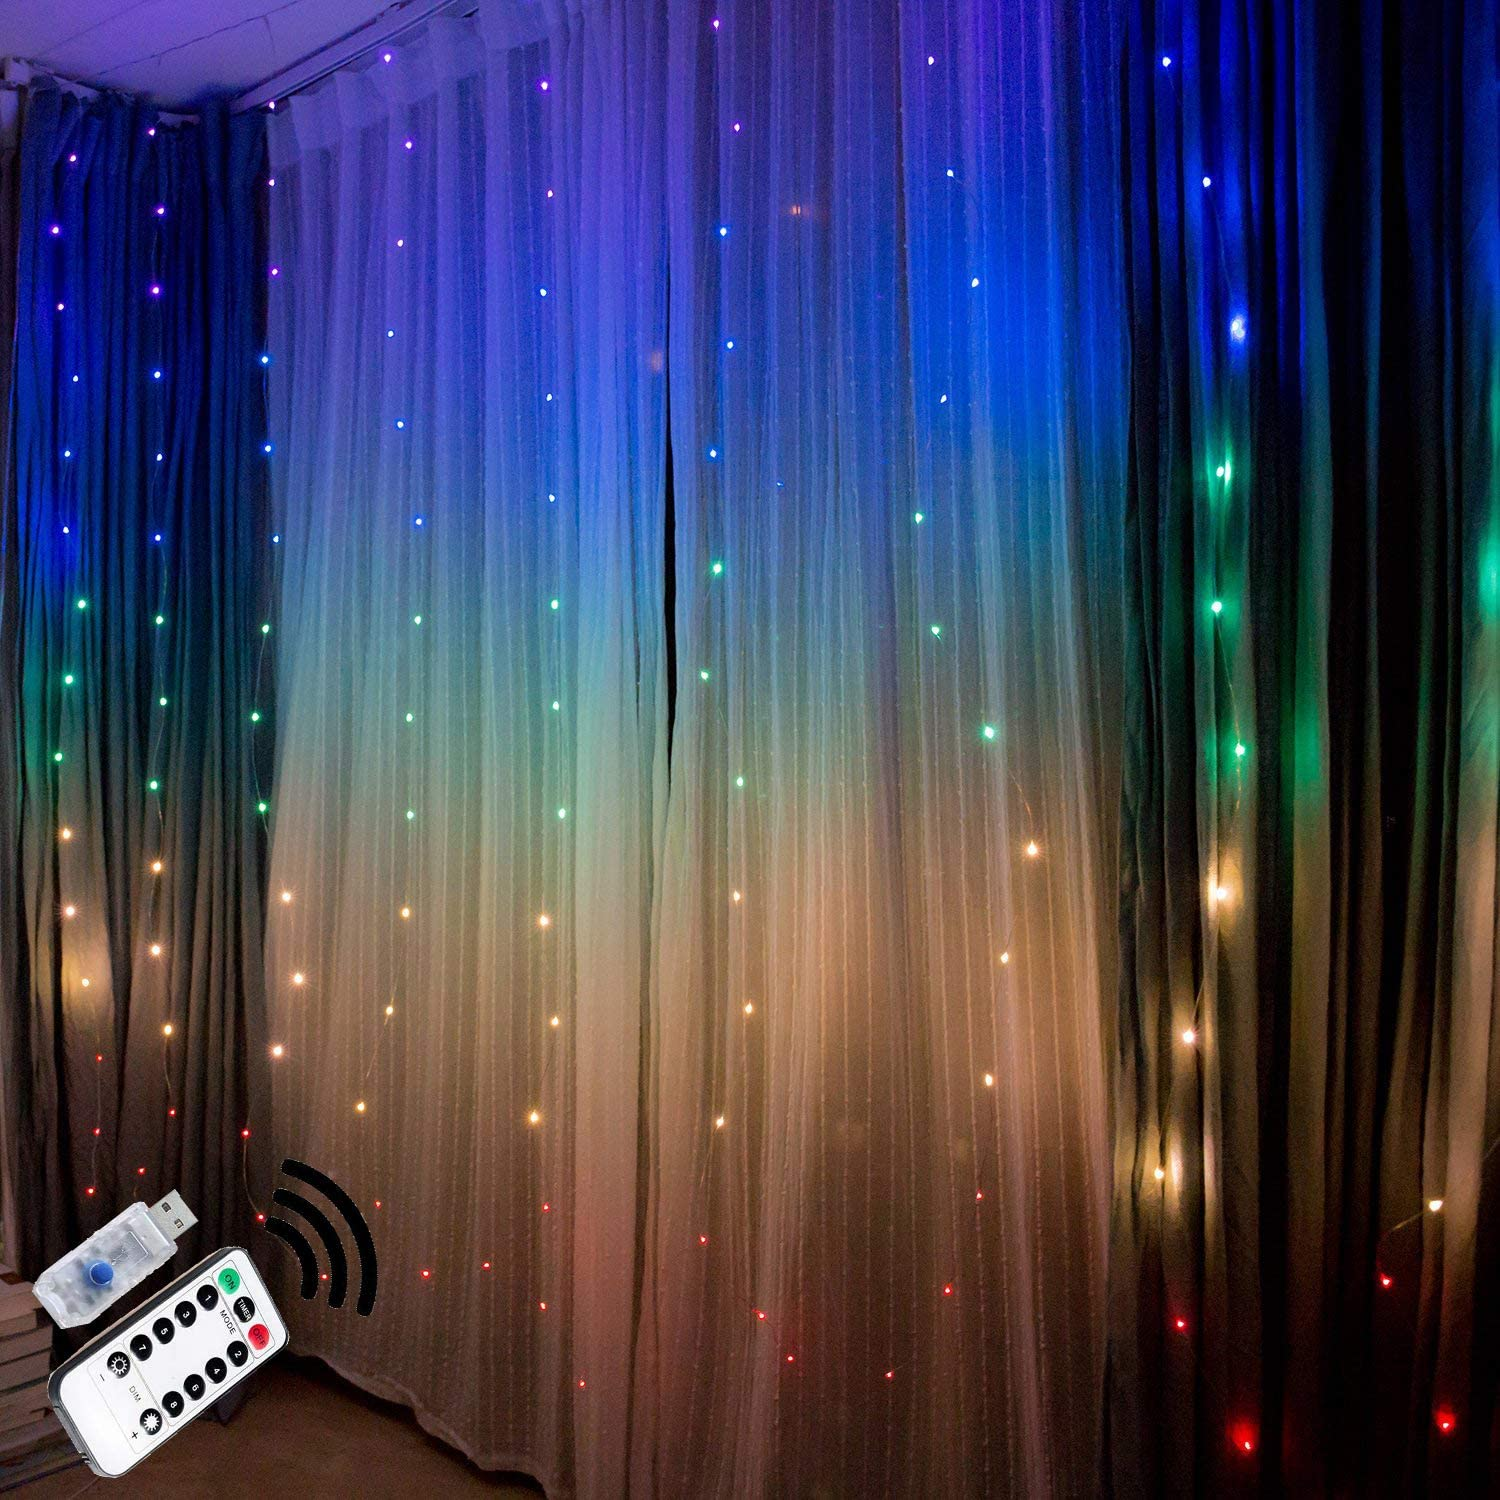 fairy lights led string lights twinkle color changing lighted curtains colored indoor window light up decorations for bedroom room wall decor wedding